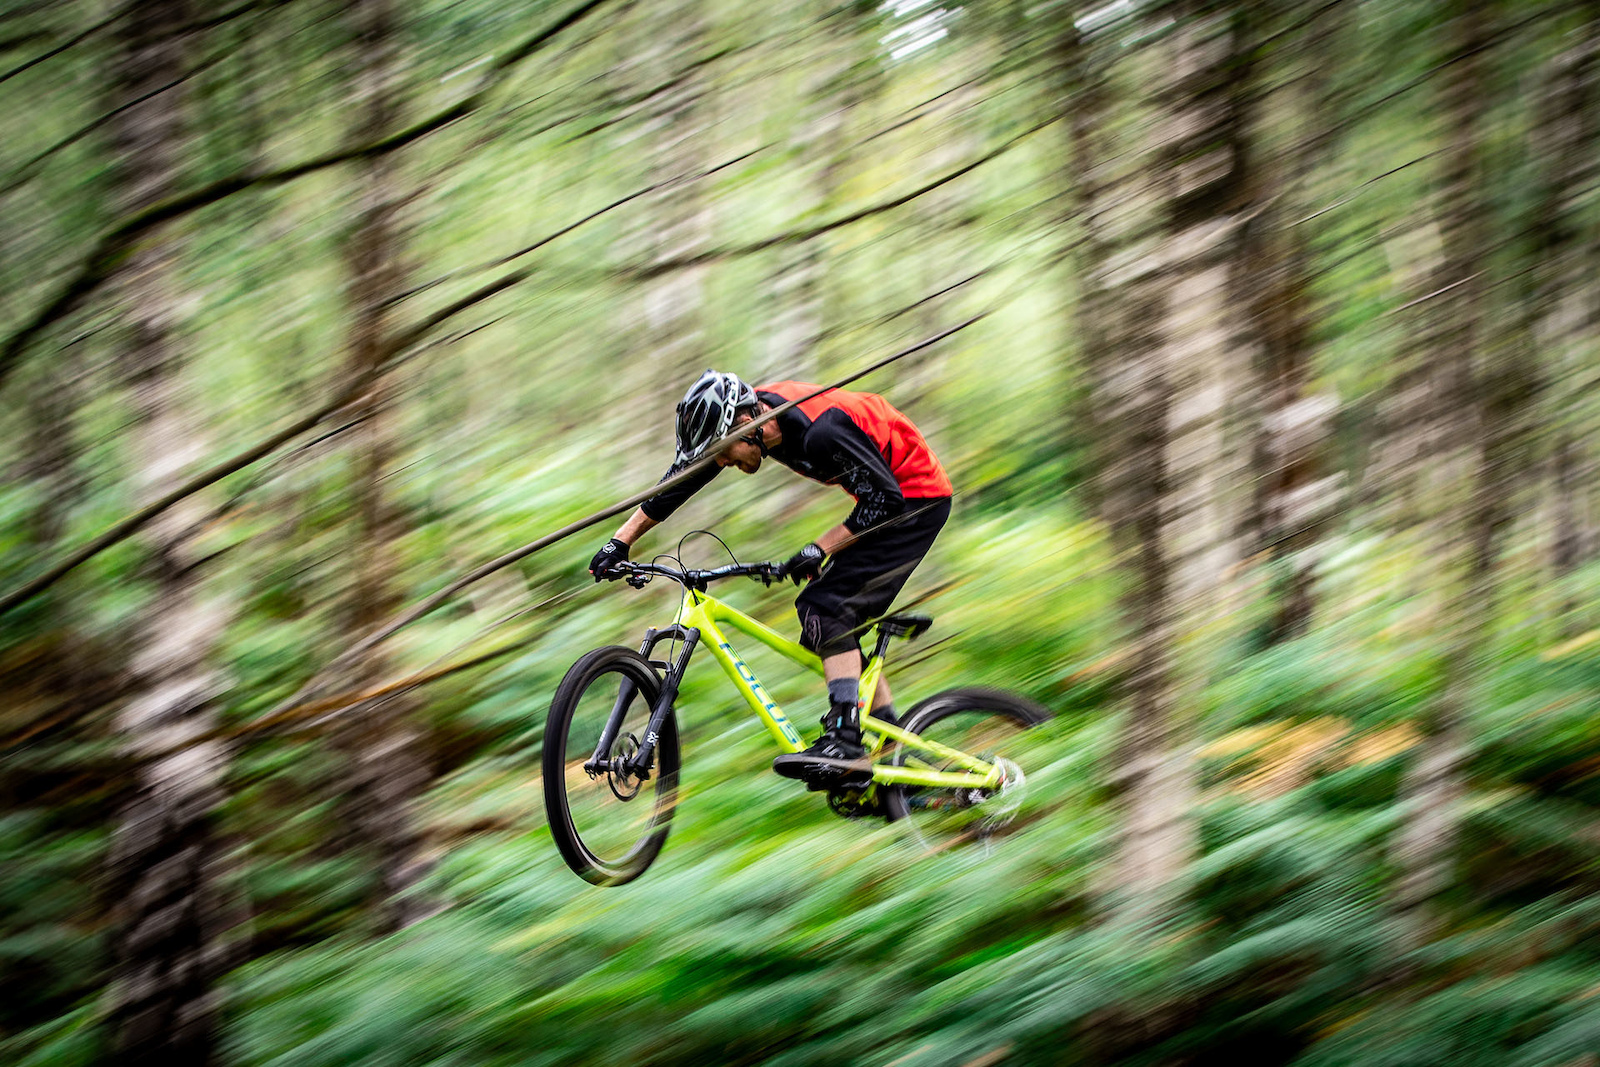 Classic speed and style from Mr Wilkins in the Surrey Hills